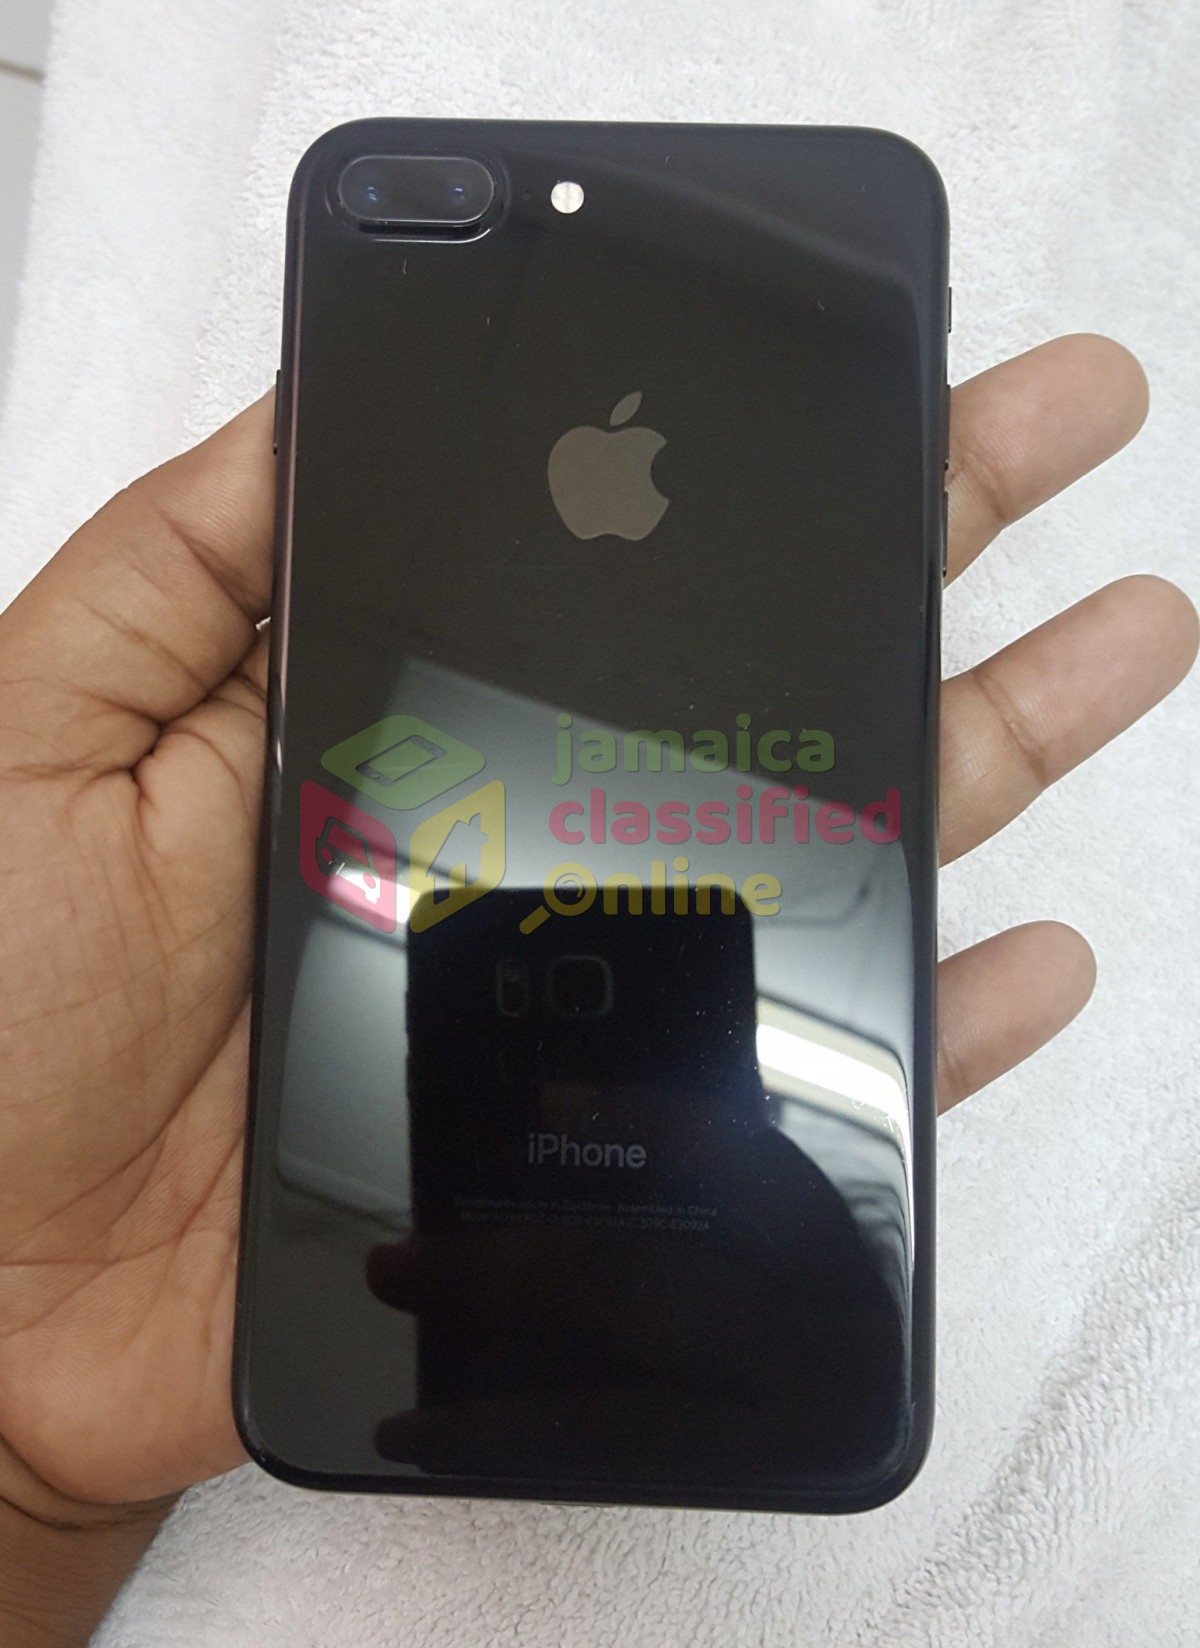 Iphone 7 Plus 128gb for sale in Halfway Tree Kingston St